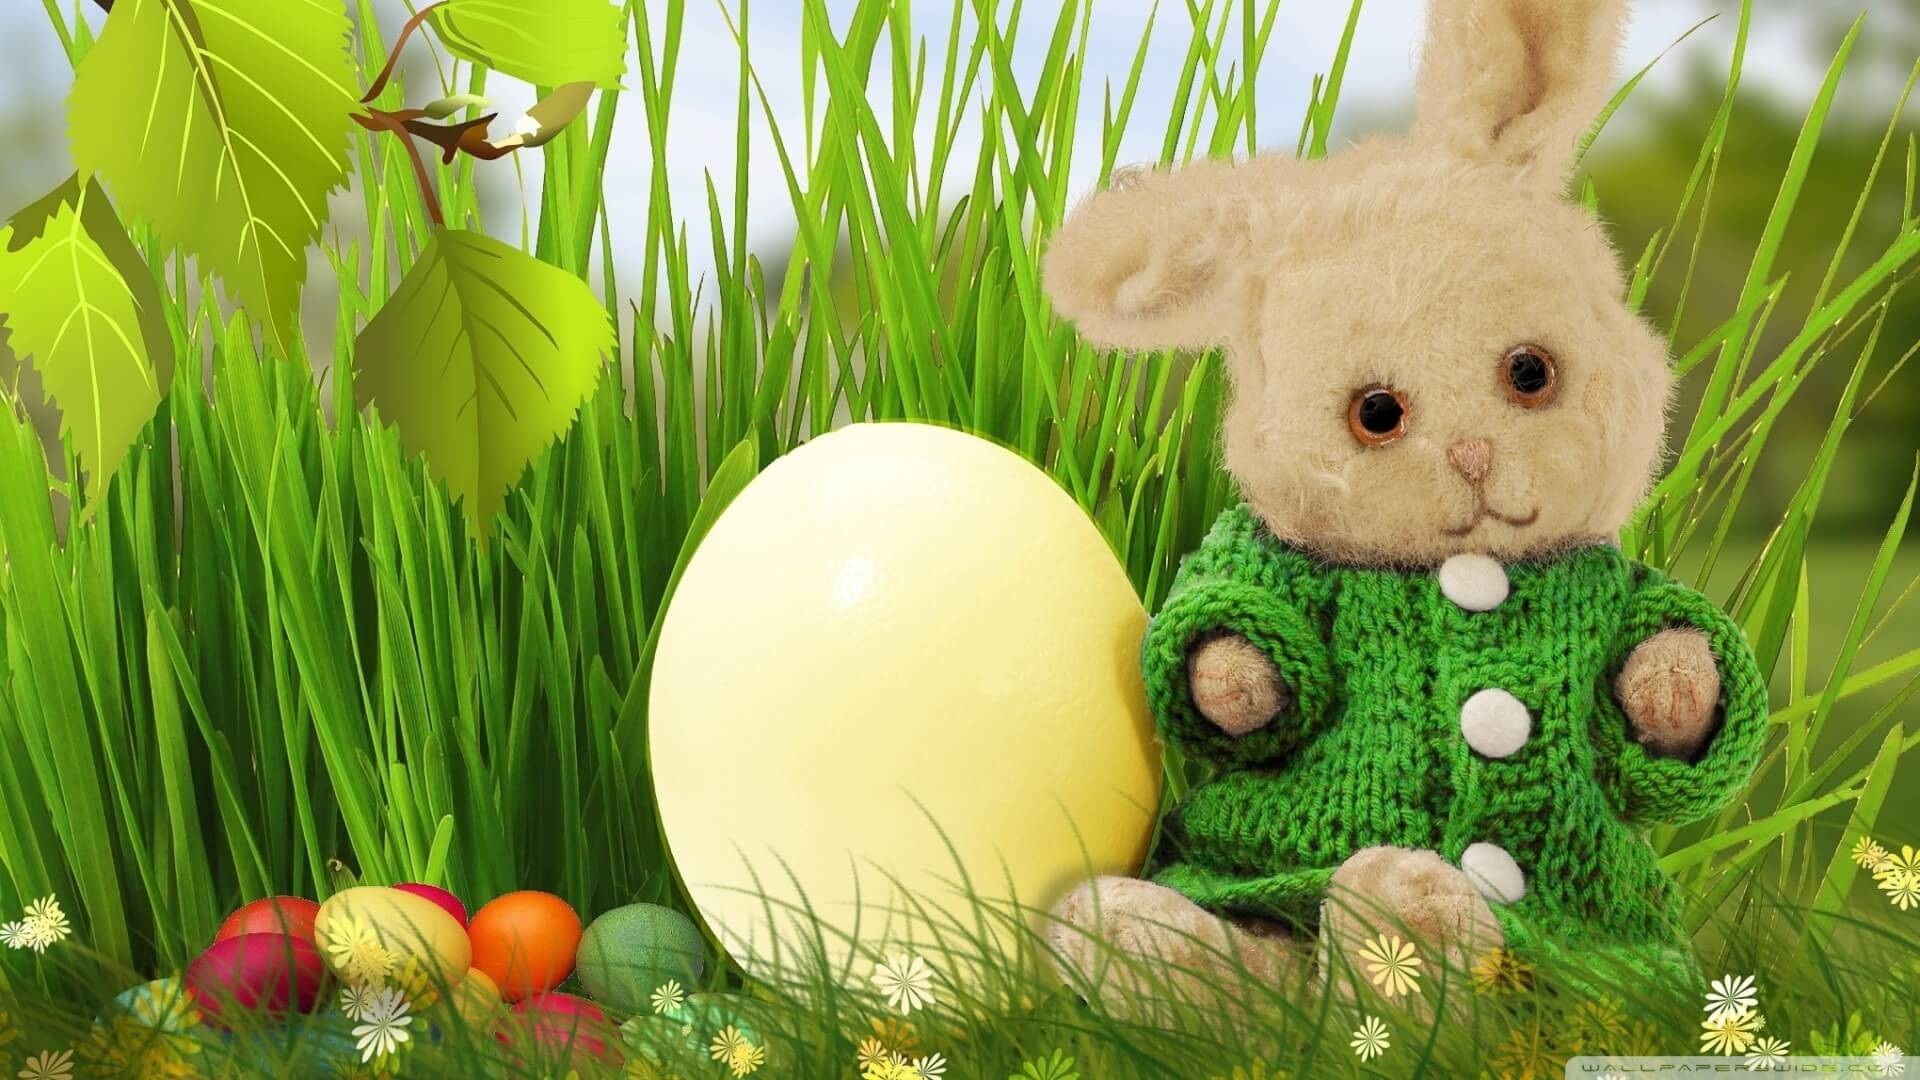 1920x1080 Easter Wallpapers for iPad